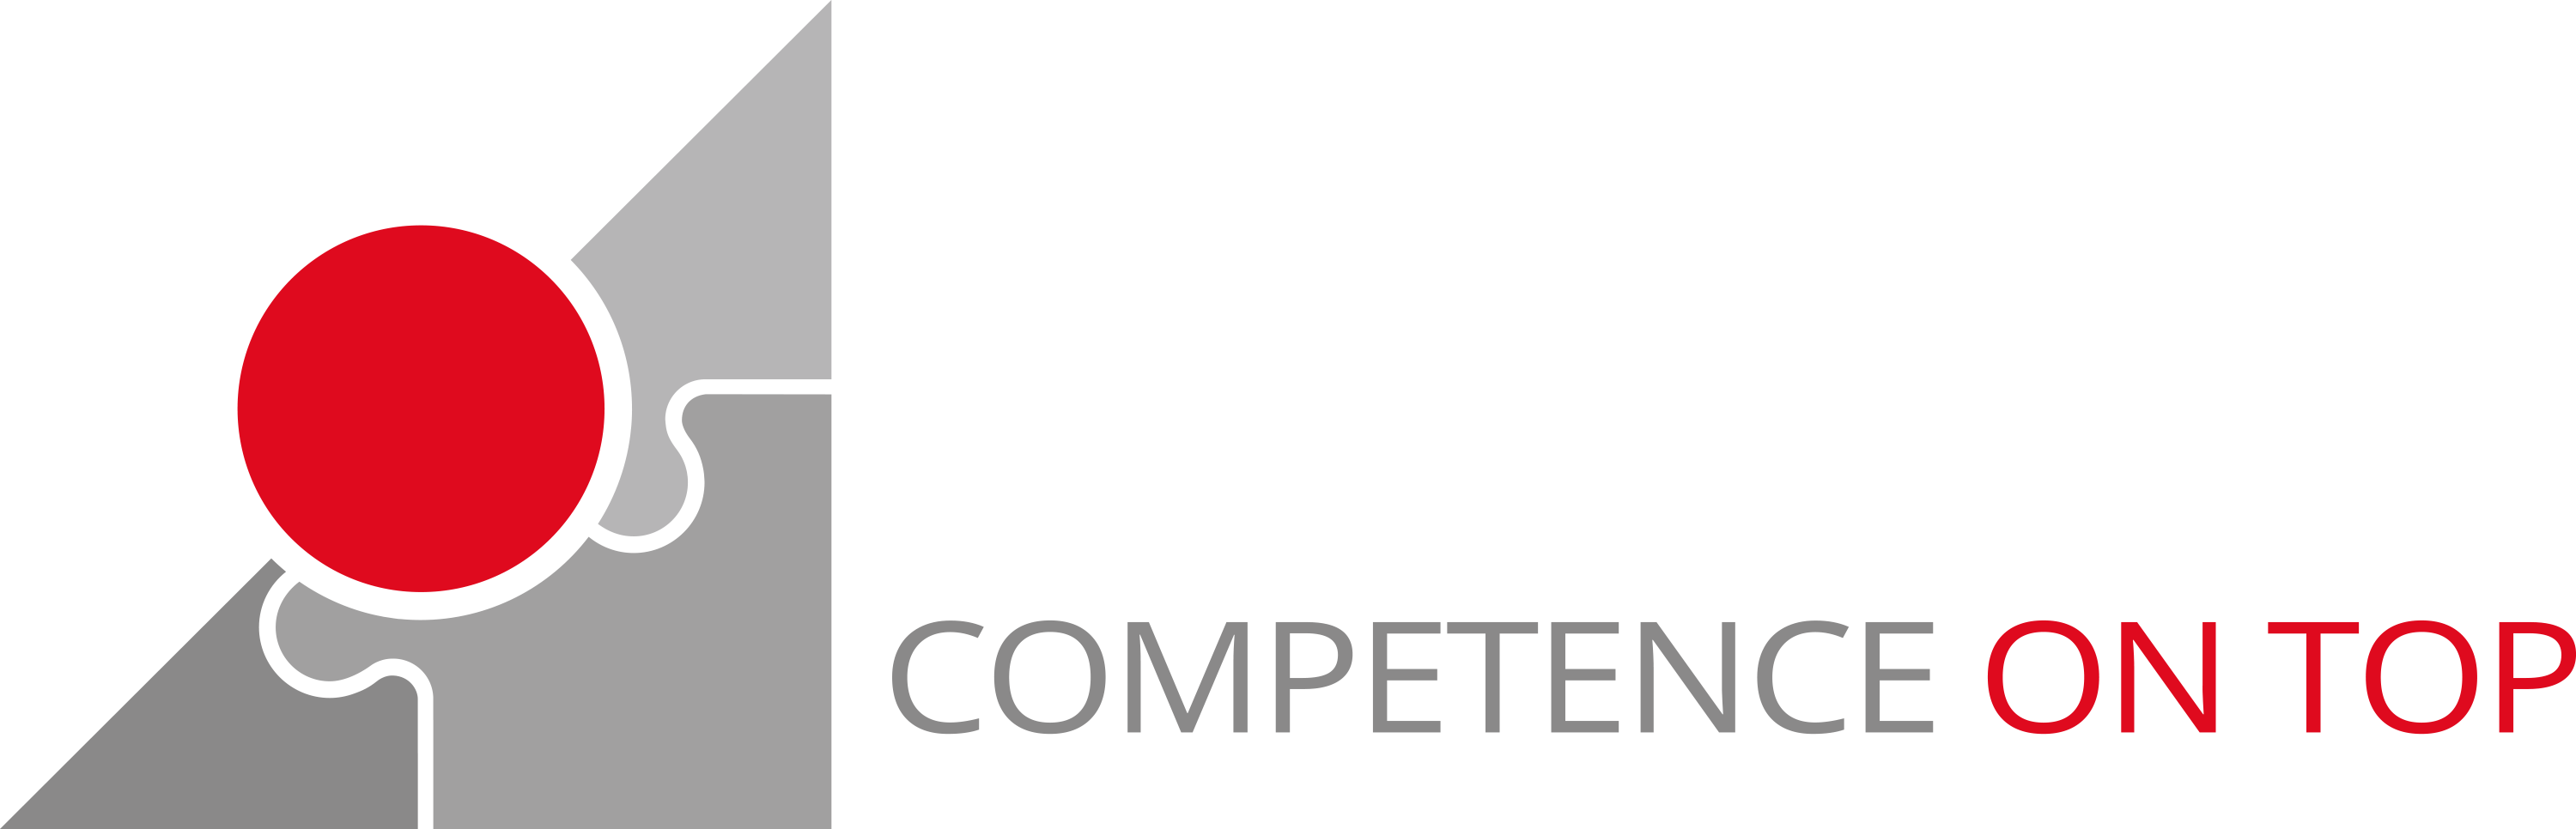 compete on top Logo